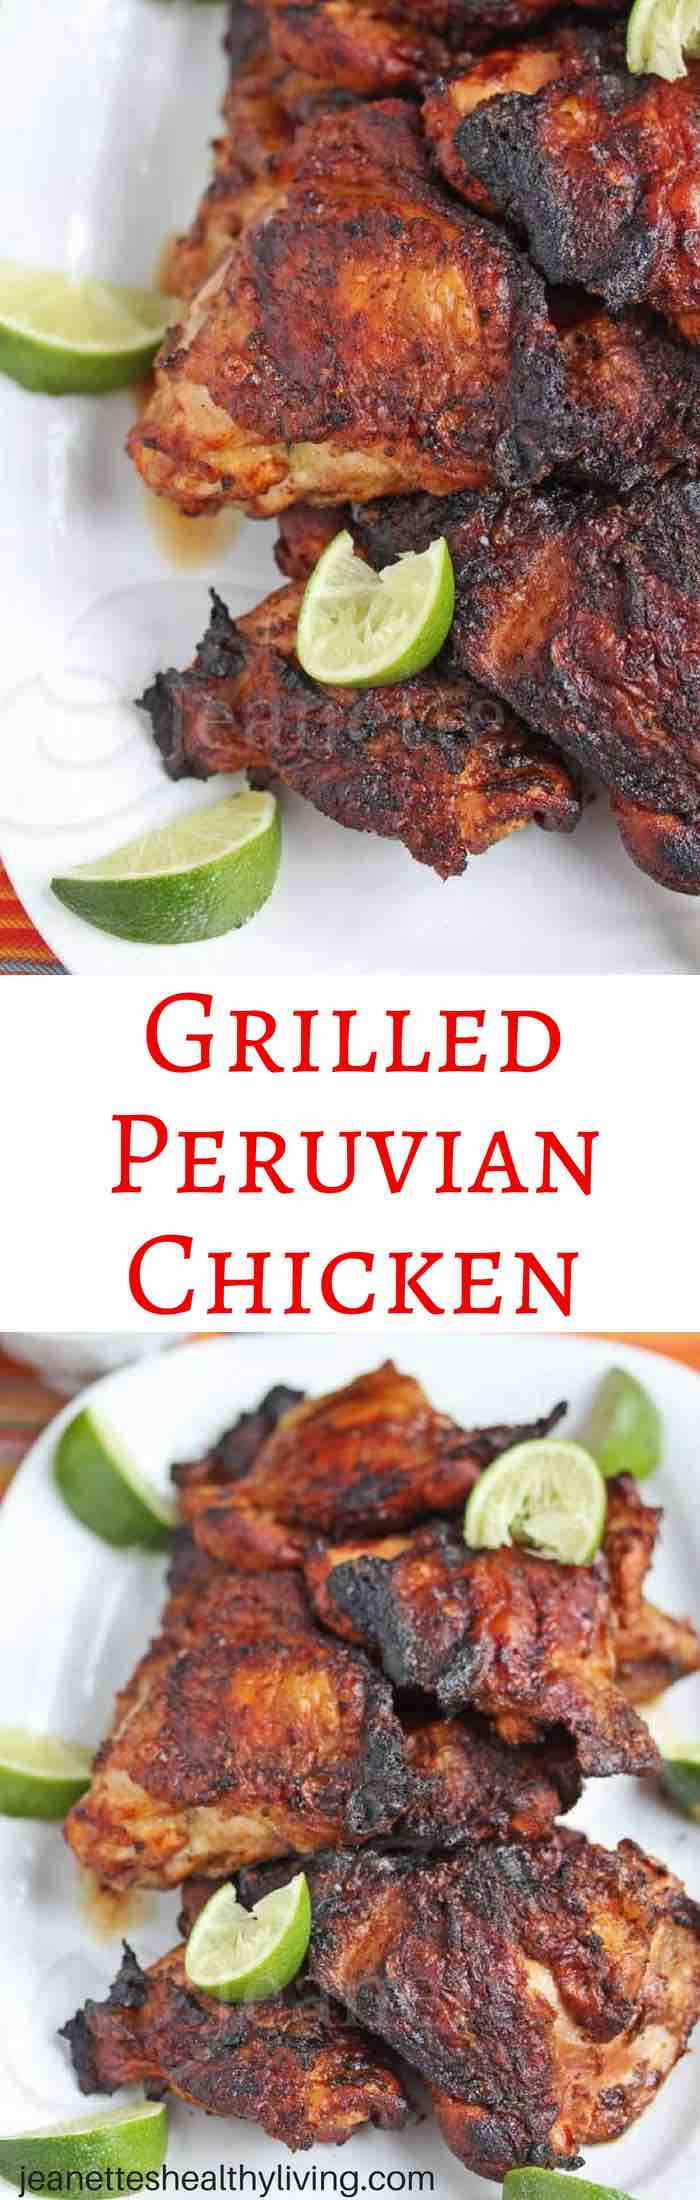 Grilled Peruvian Chicken - smoky, delicious and easy to make. This is a delicious summer chicken recipe you must try!